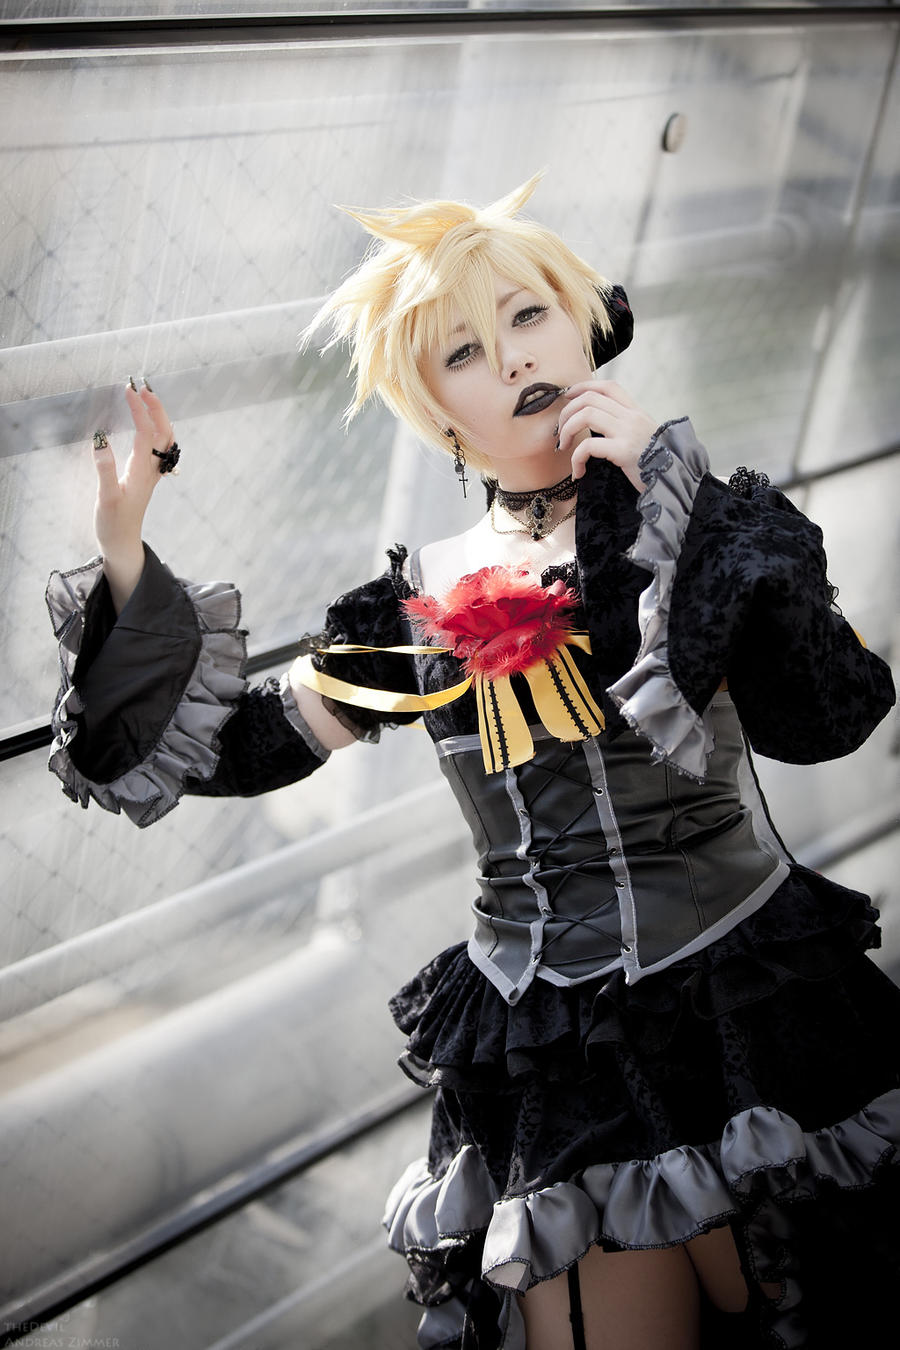 Len Kagami [Imitation Black] by theDevil-photography